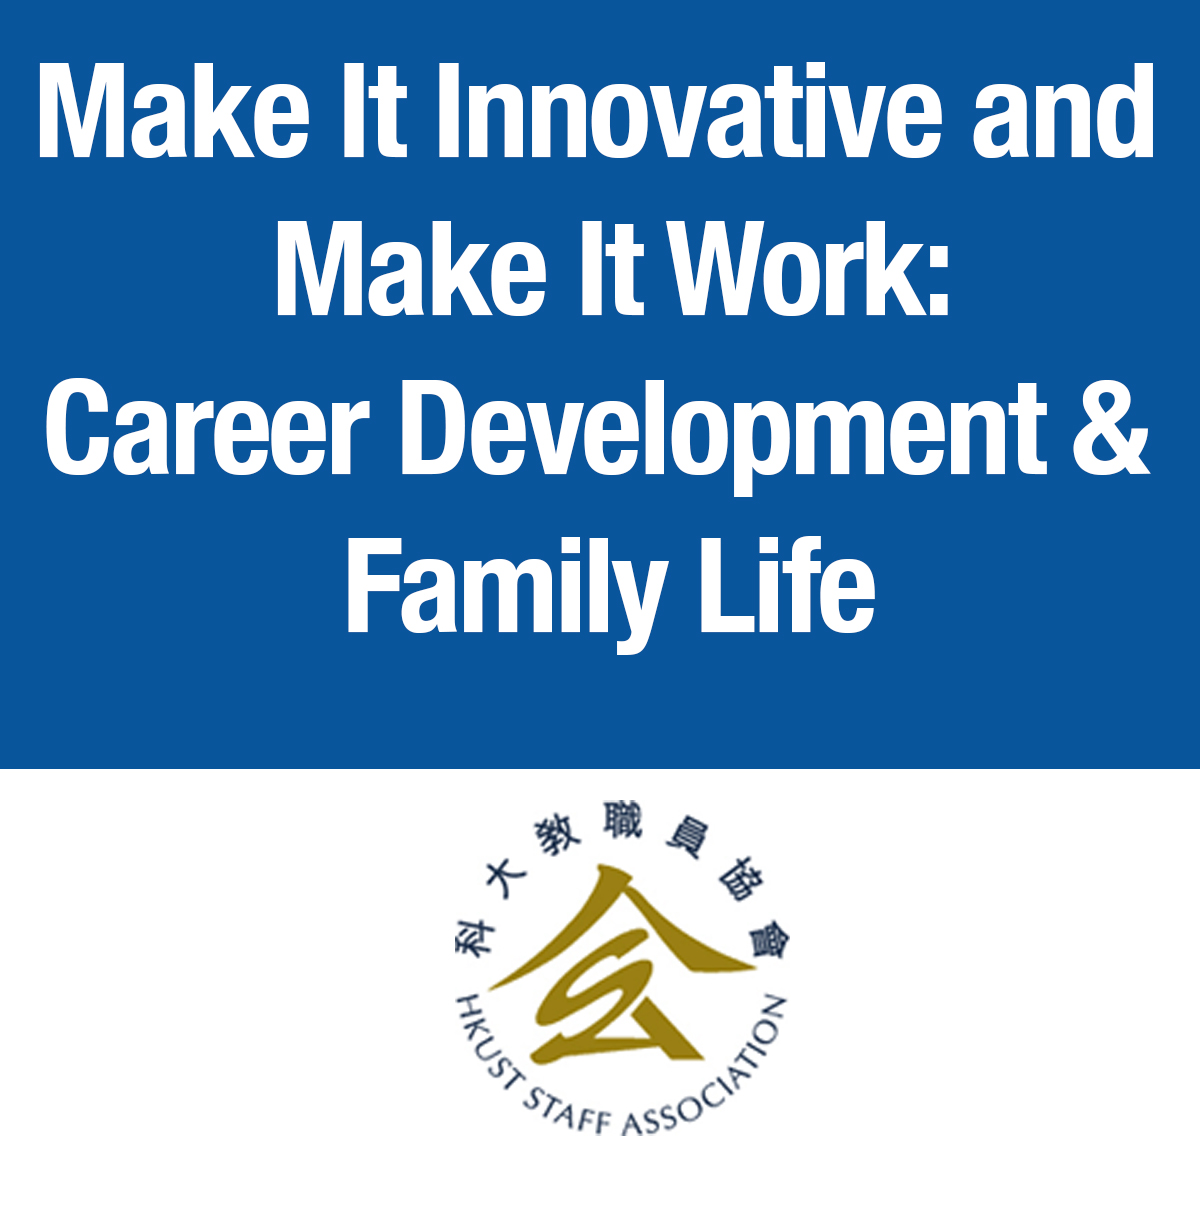 Make It Innovative and Make It Work: Career Development & Family Life image